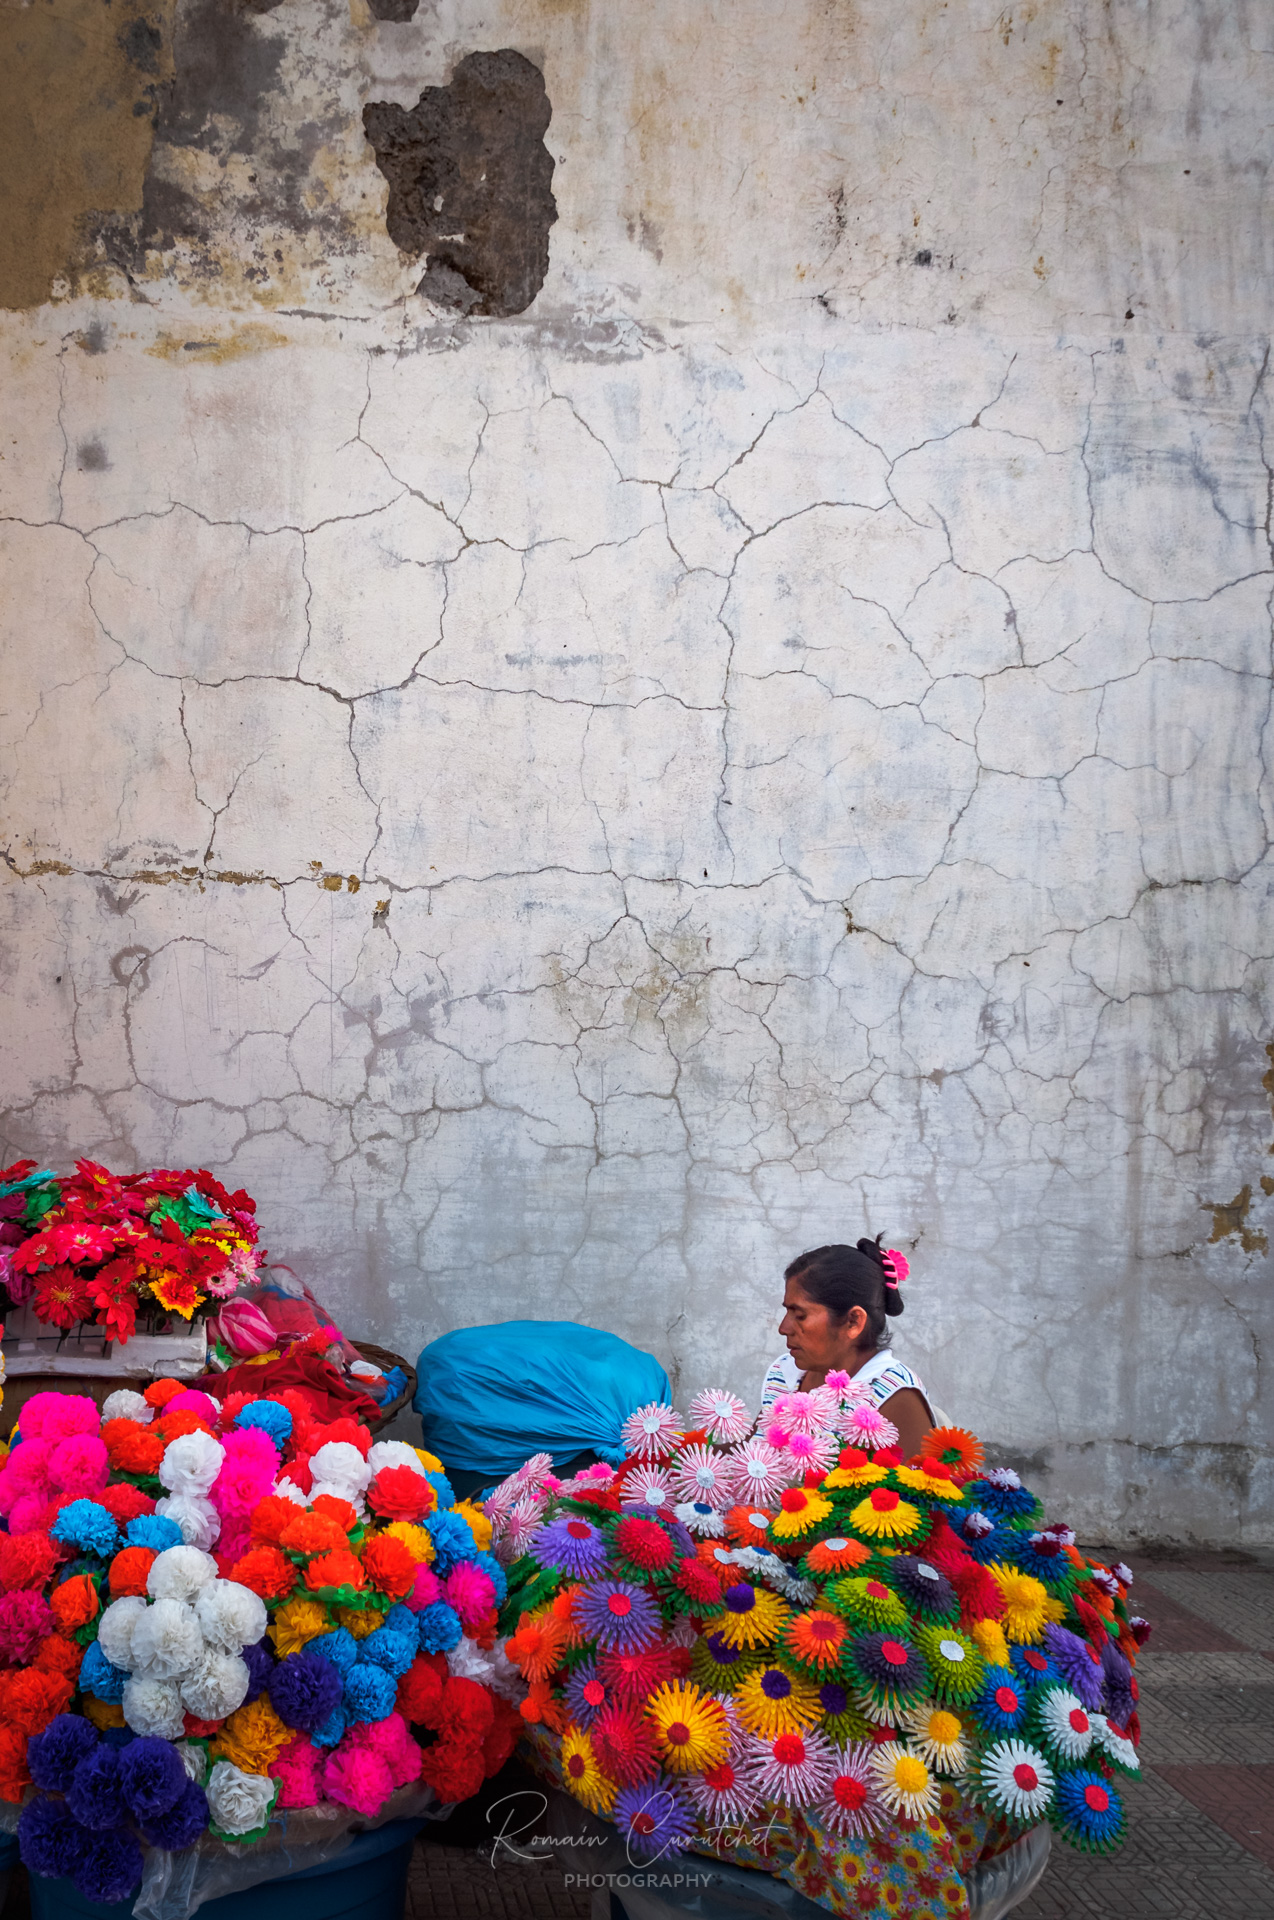 Flower seller next to Cathedral in Leon, Nicaragua © Romain Curutchet